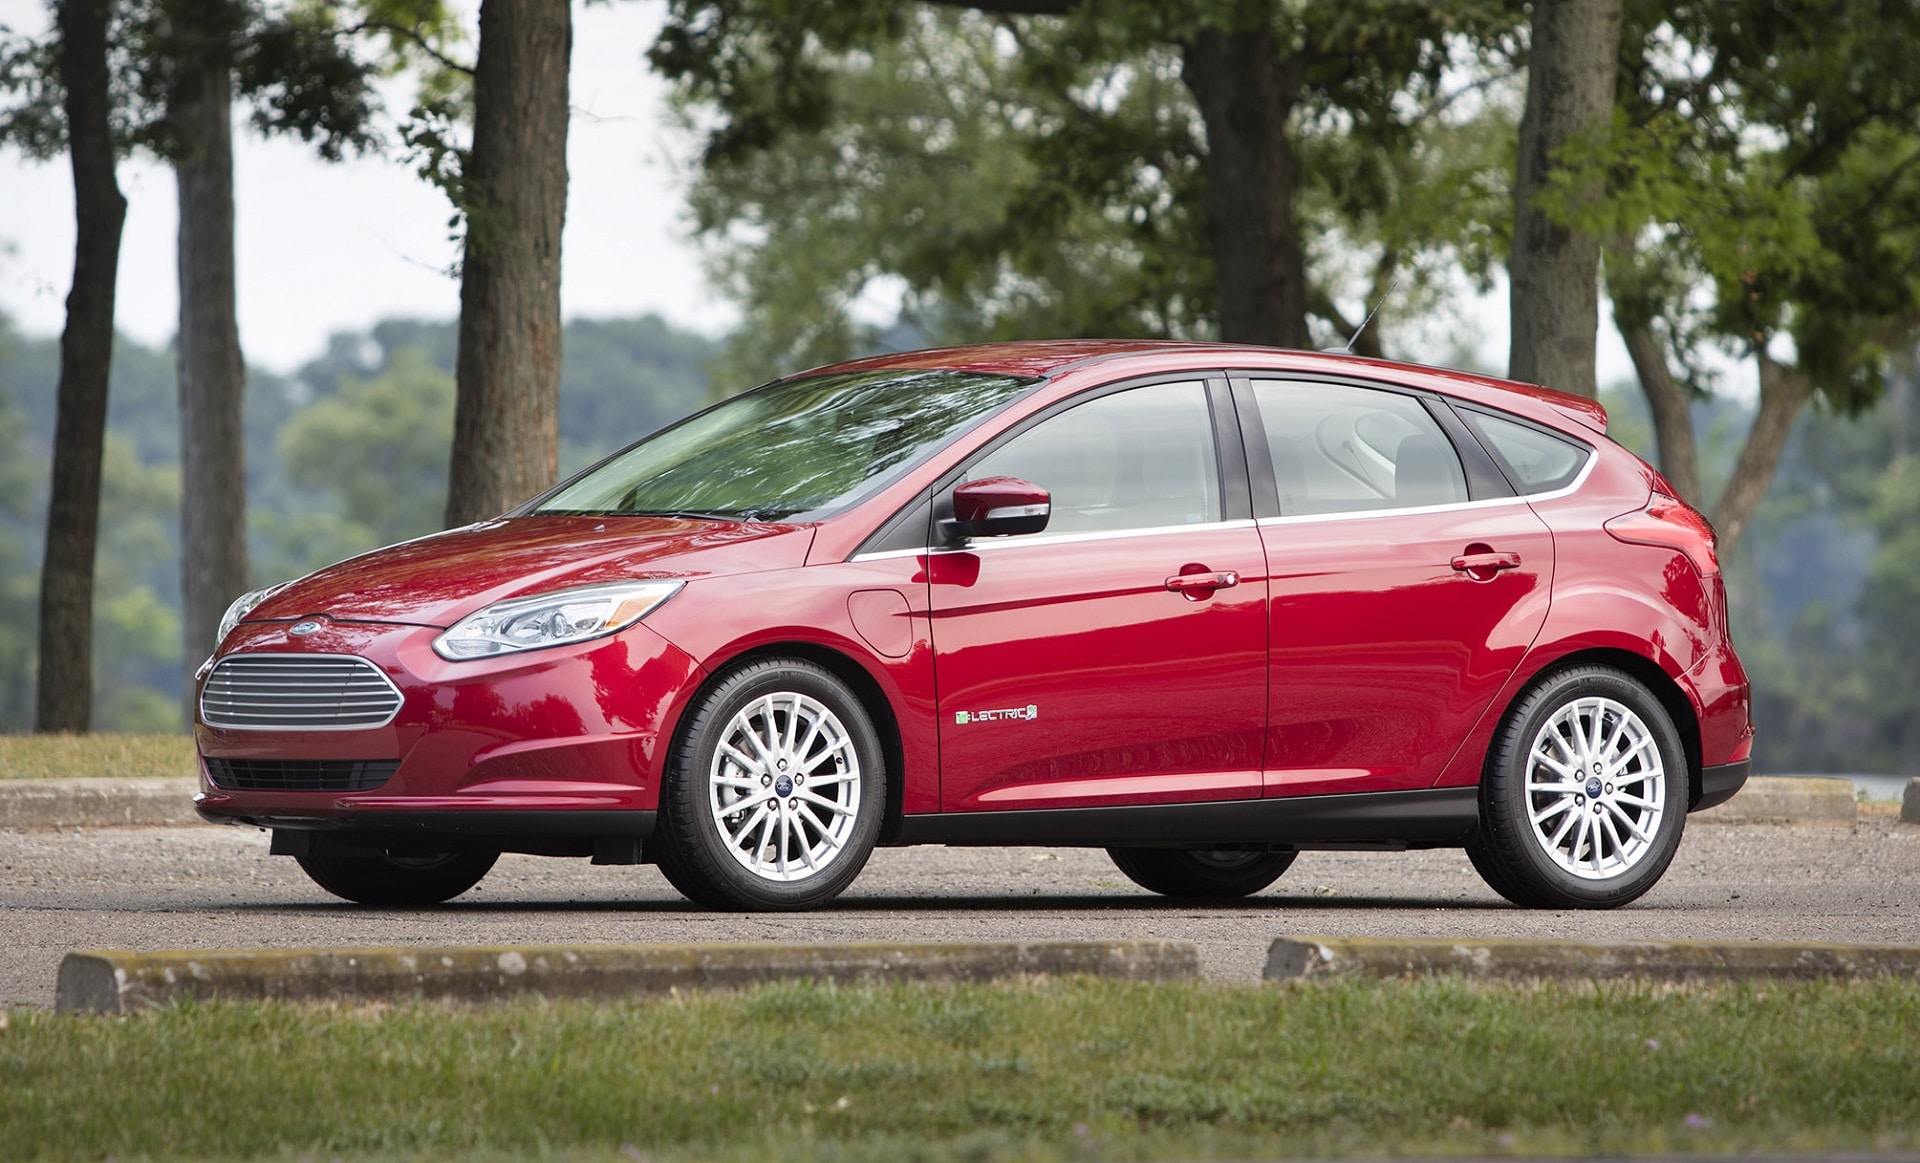 Ford Focus Electric IZEV Program